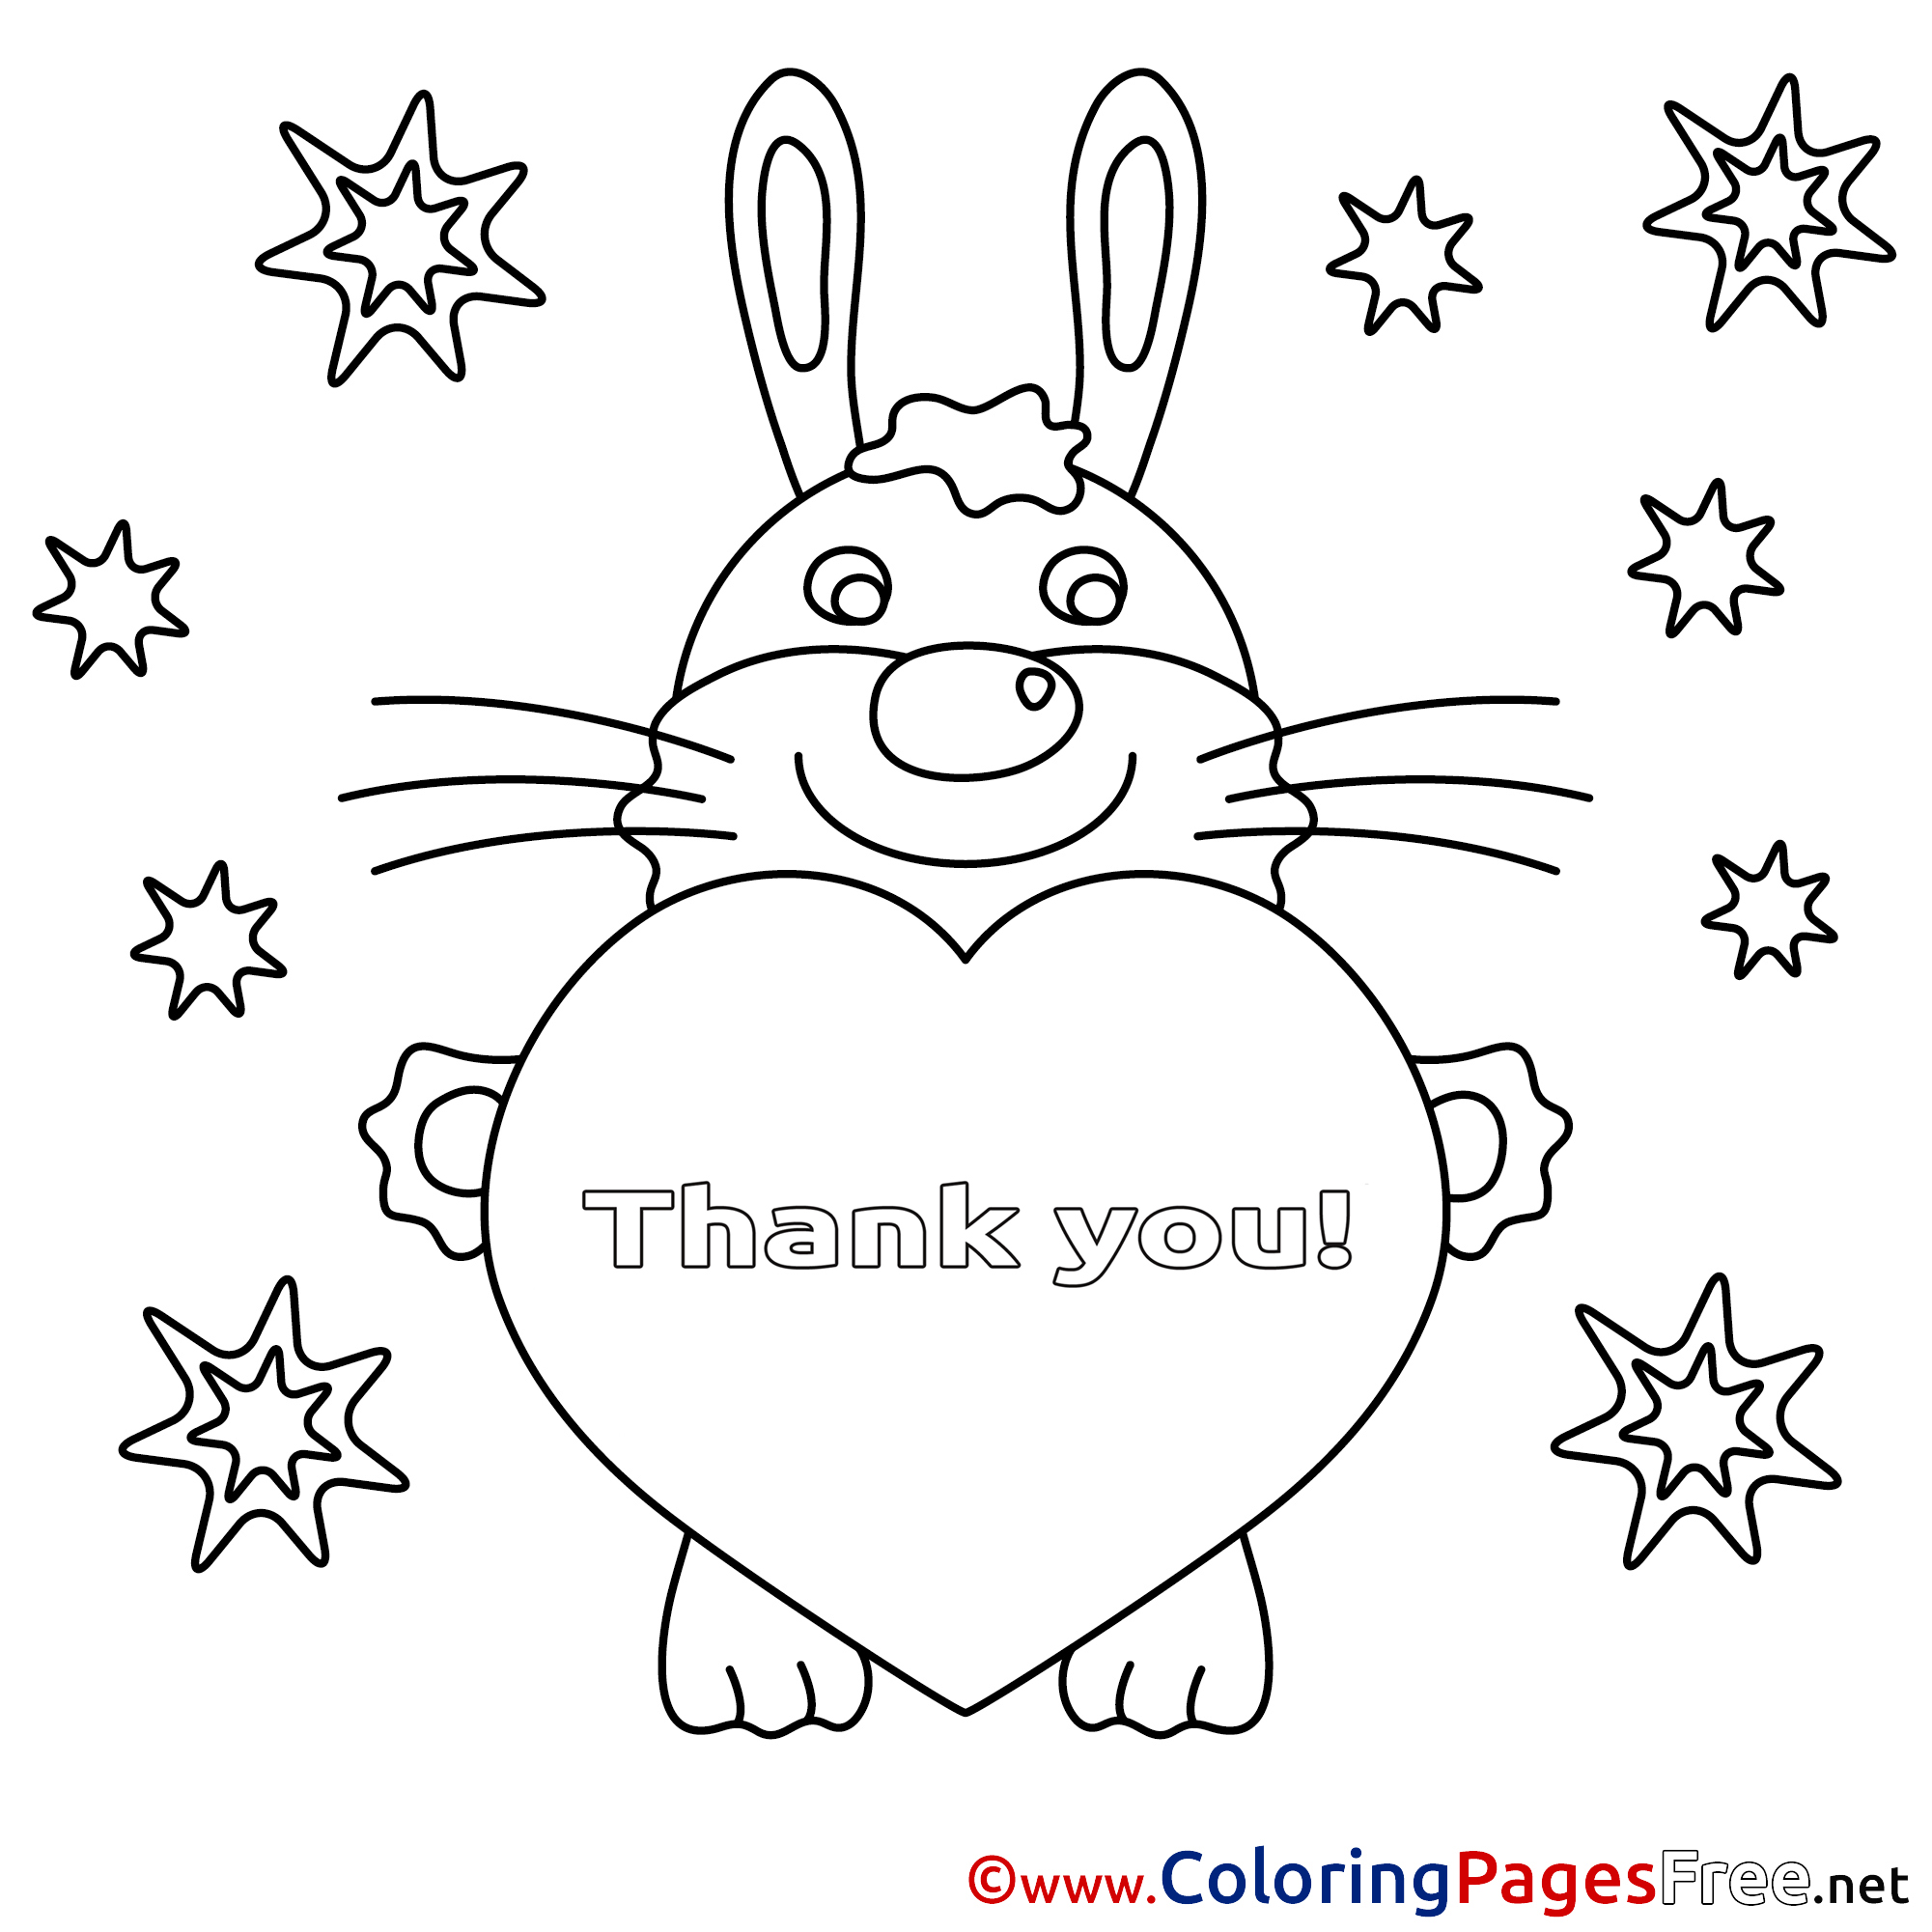 thank you coloring sheets 30 thank you coloring sheet free printable coloring pages coloring thank sheets you